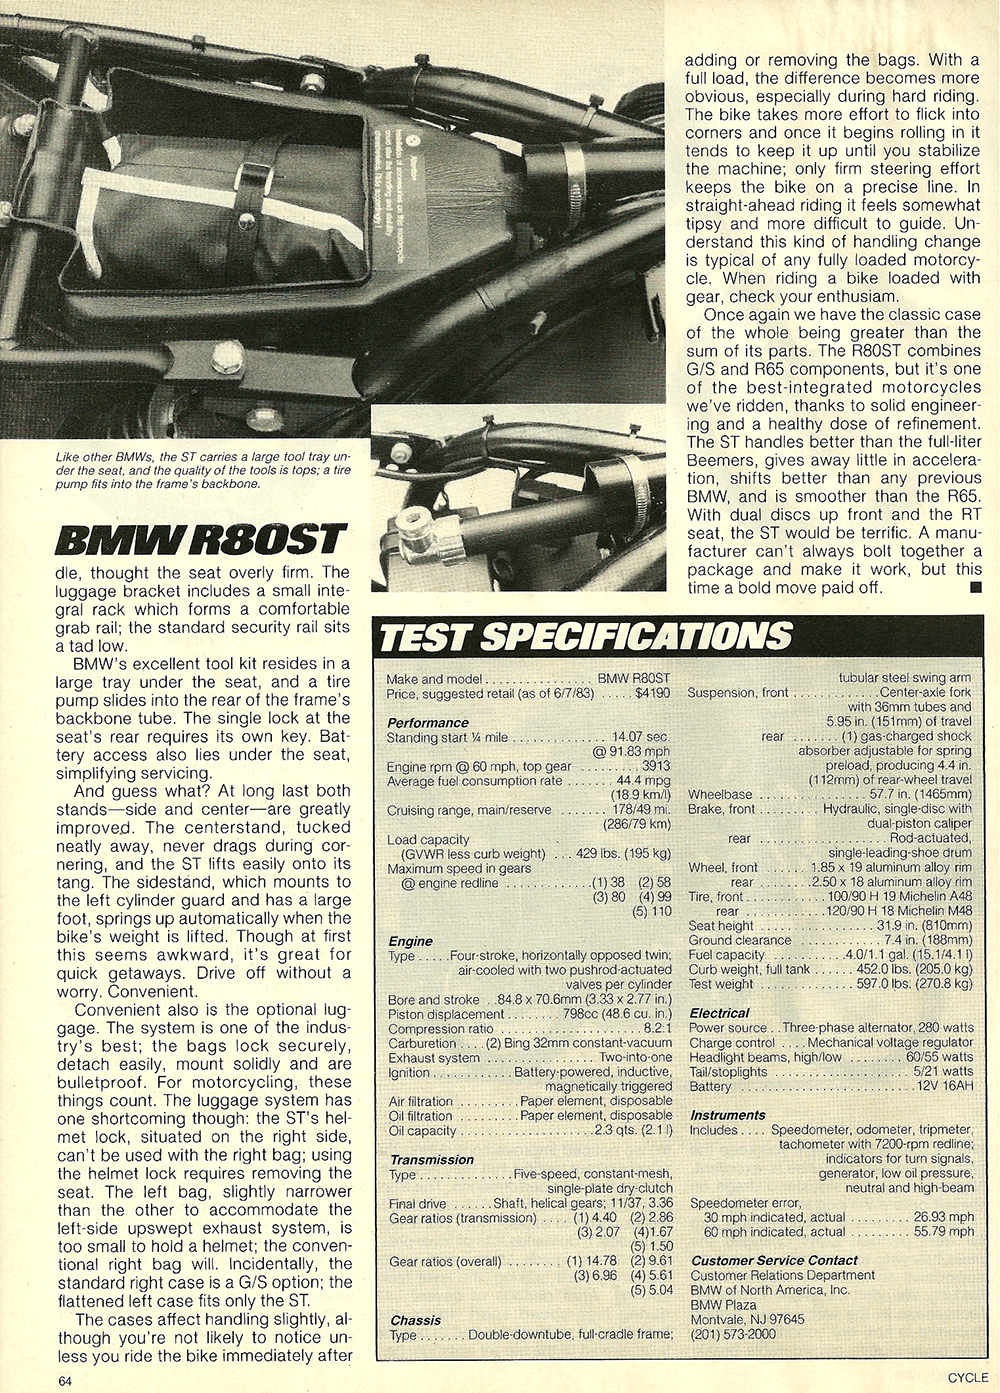 1983 BMW R80ST road test 6.jpg